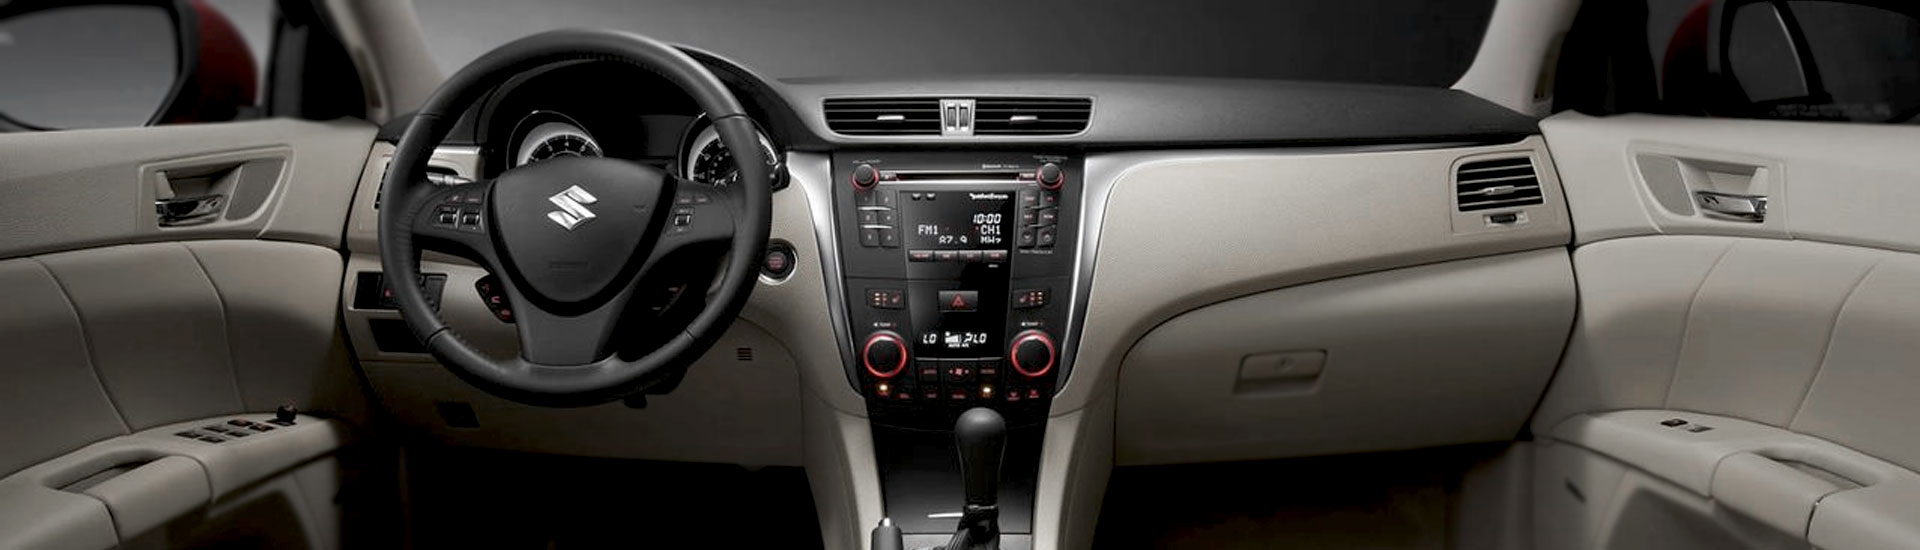 Suzuki Kizashi Custom Dash Kits